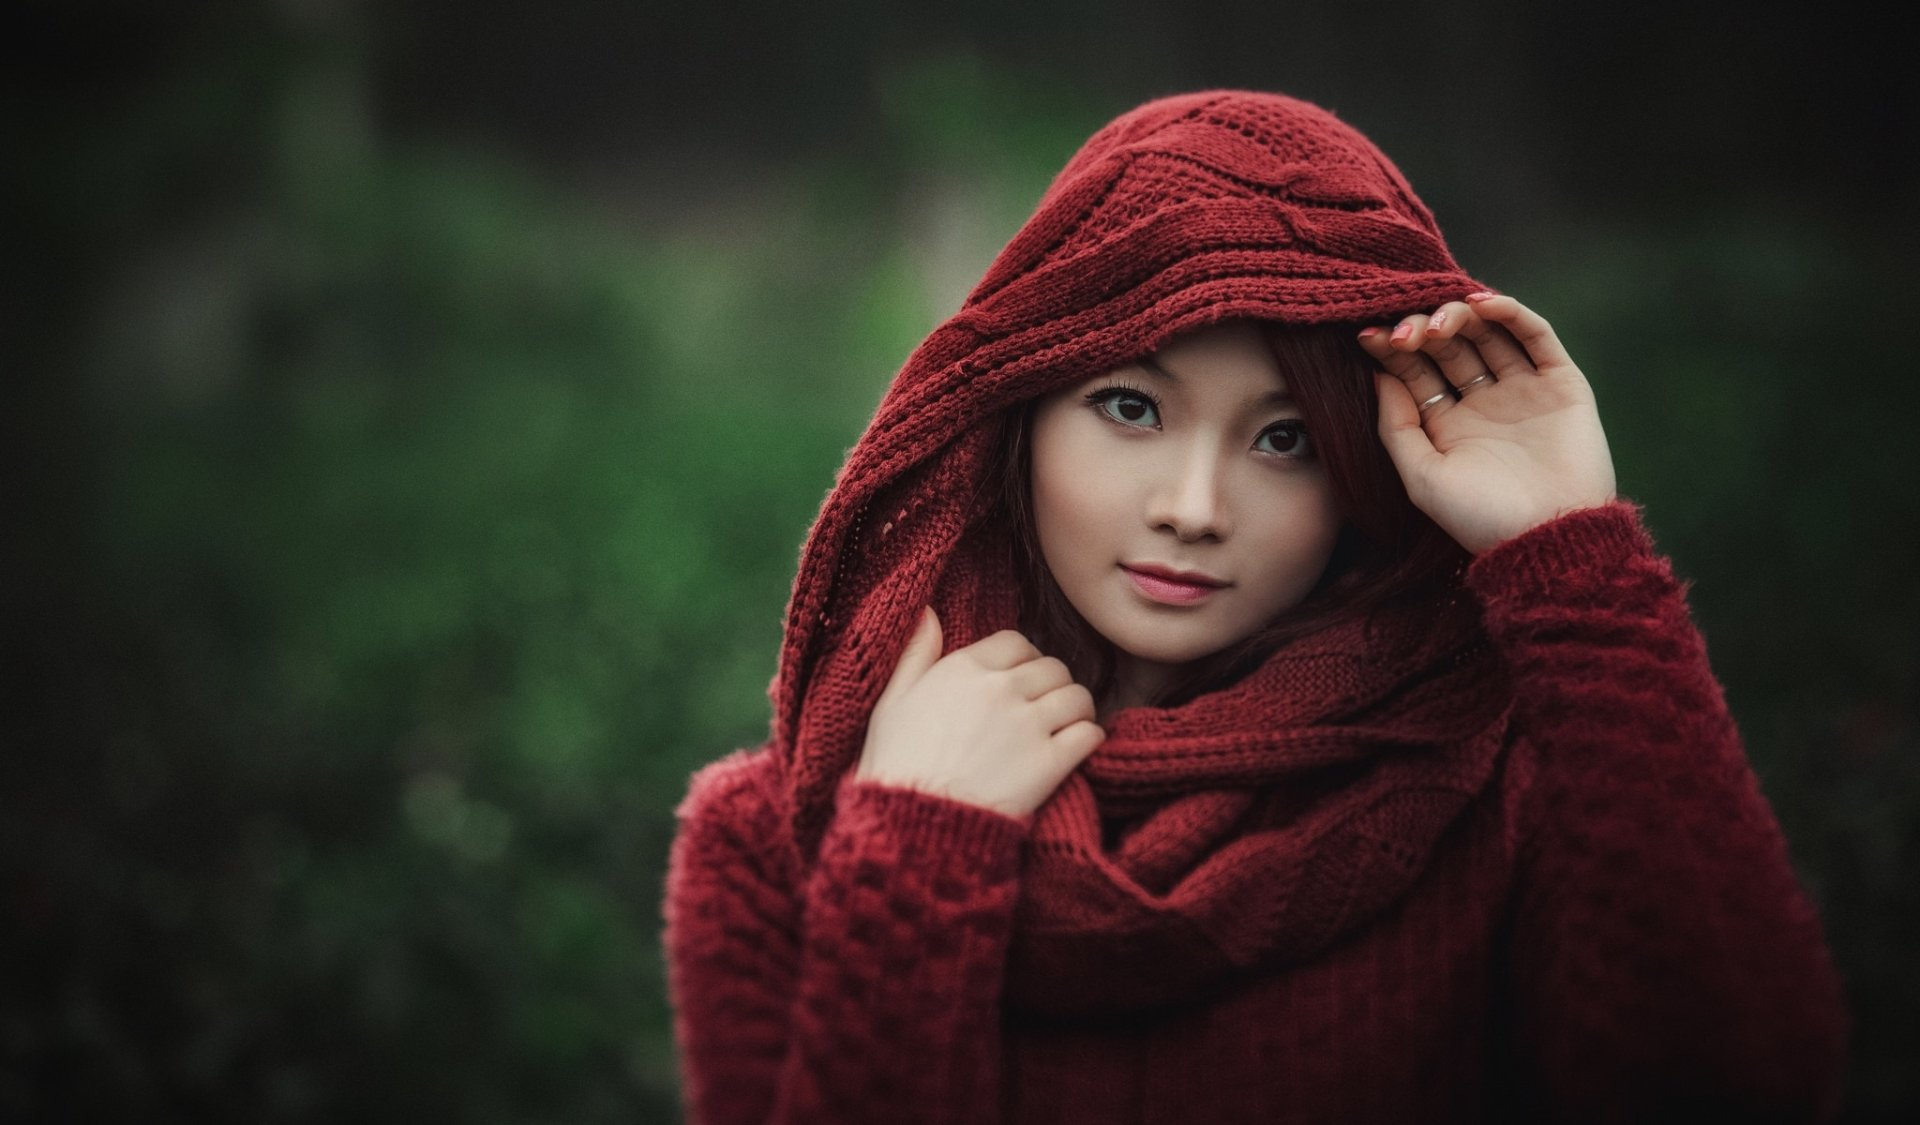 Women - Asian  Woman Model Girl Brown Eyes Scarf Depth Of Field Wallpaper